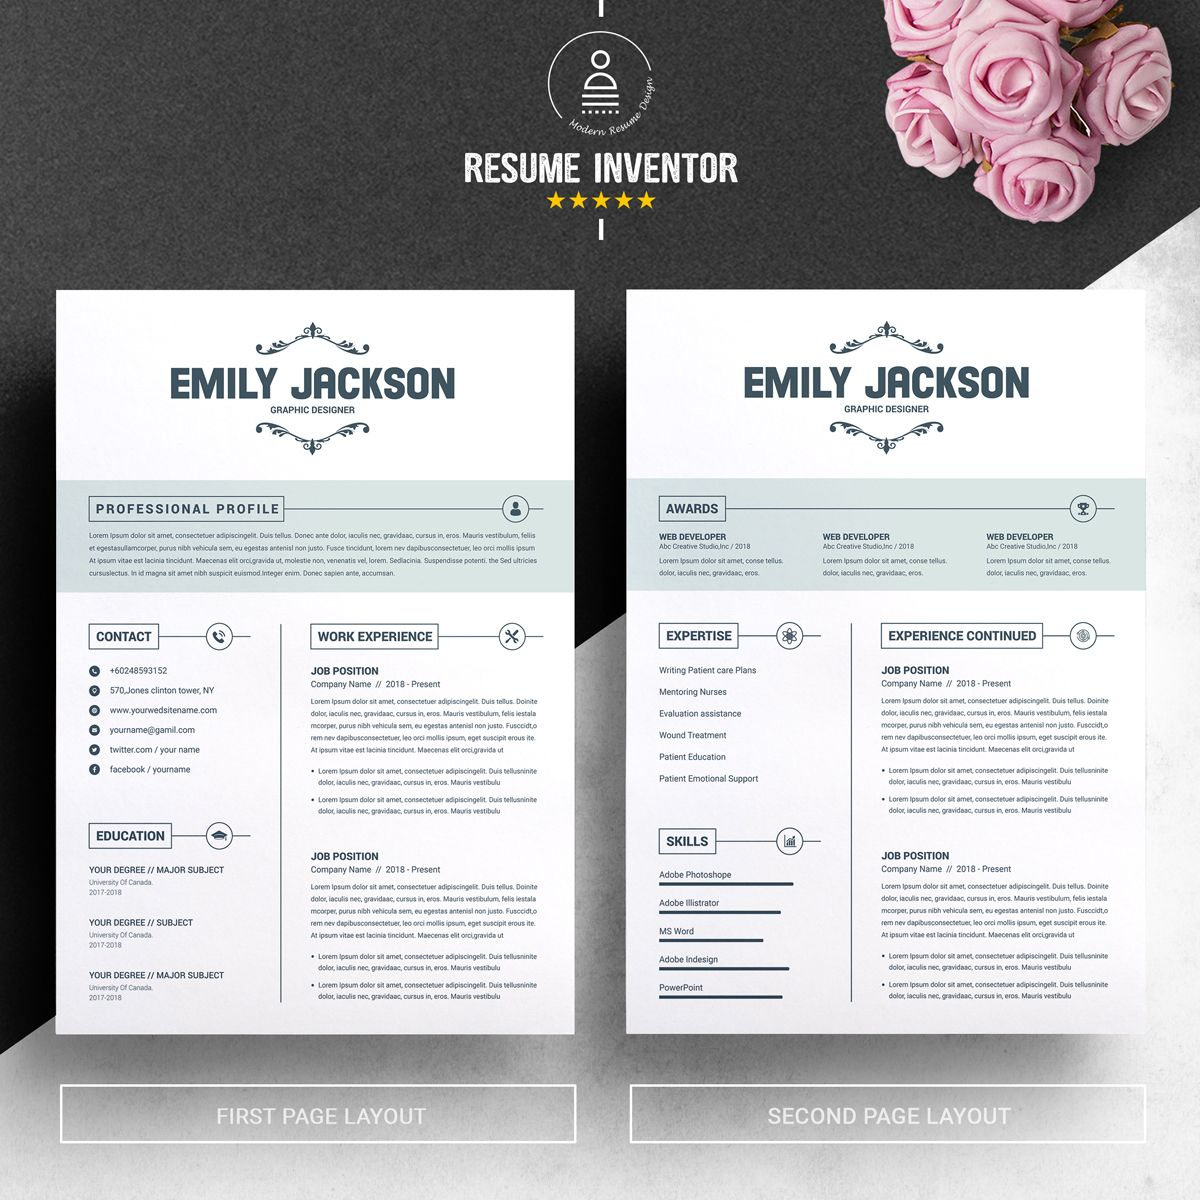 Emily Jackson Resume Template 74376 Word template